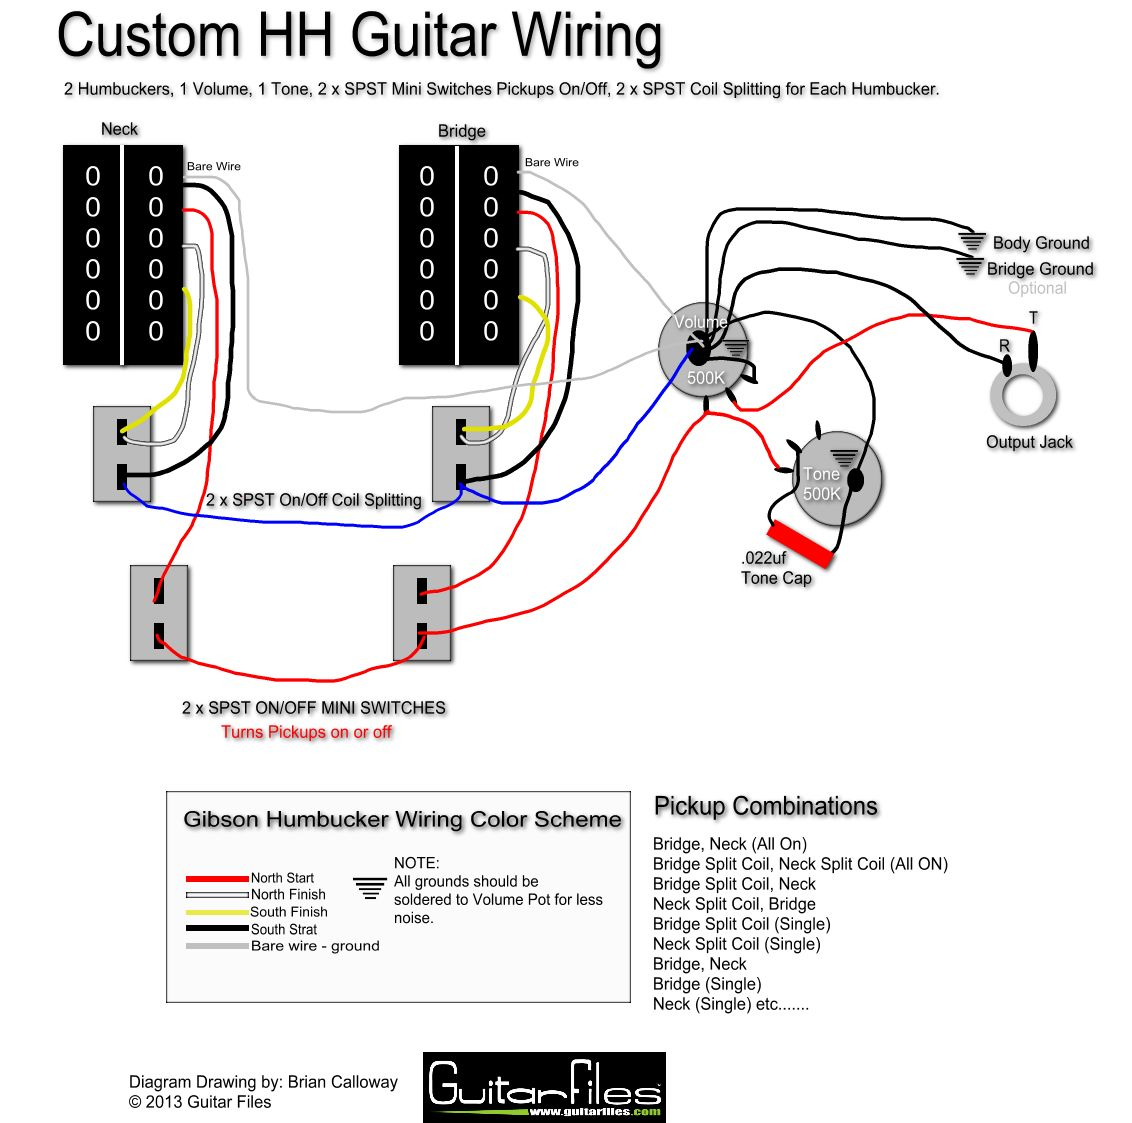 Pin på Guitar wiring